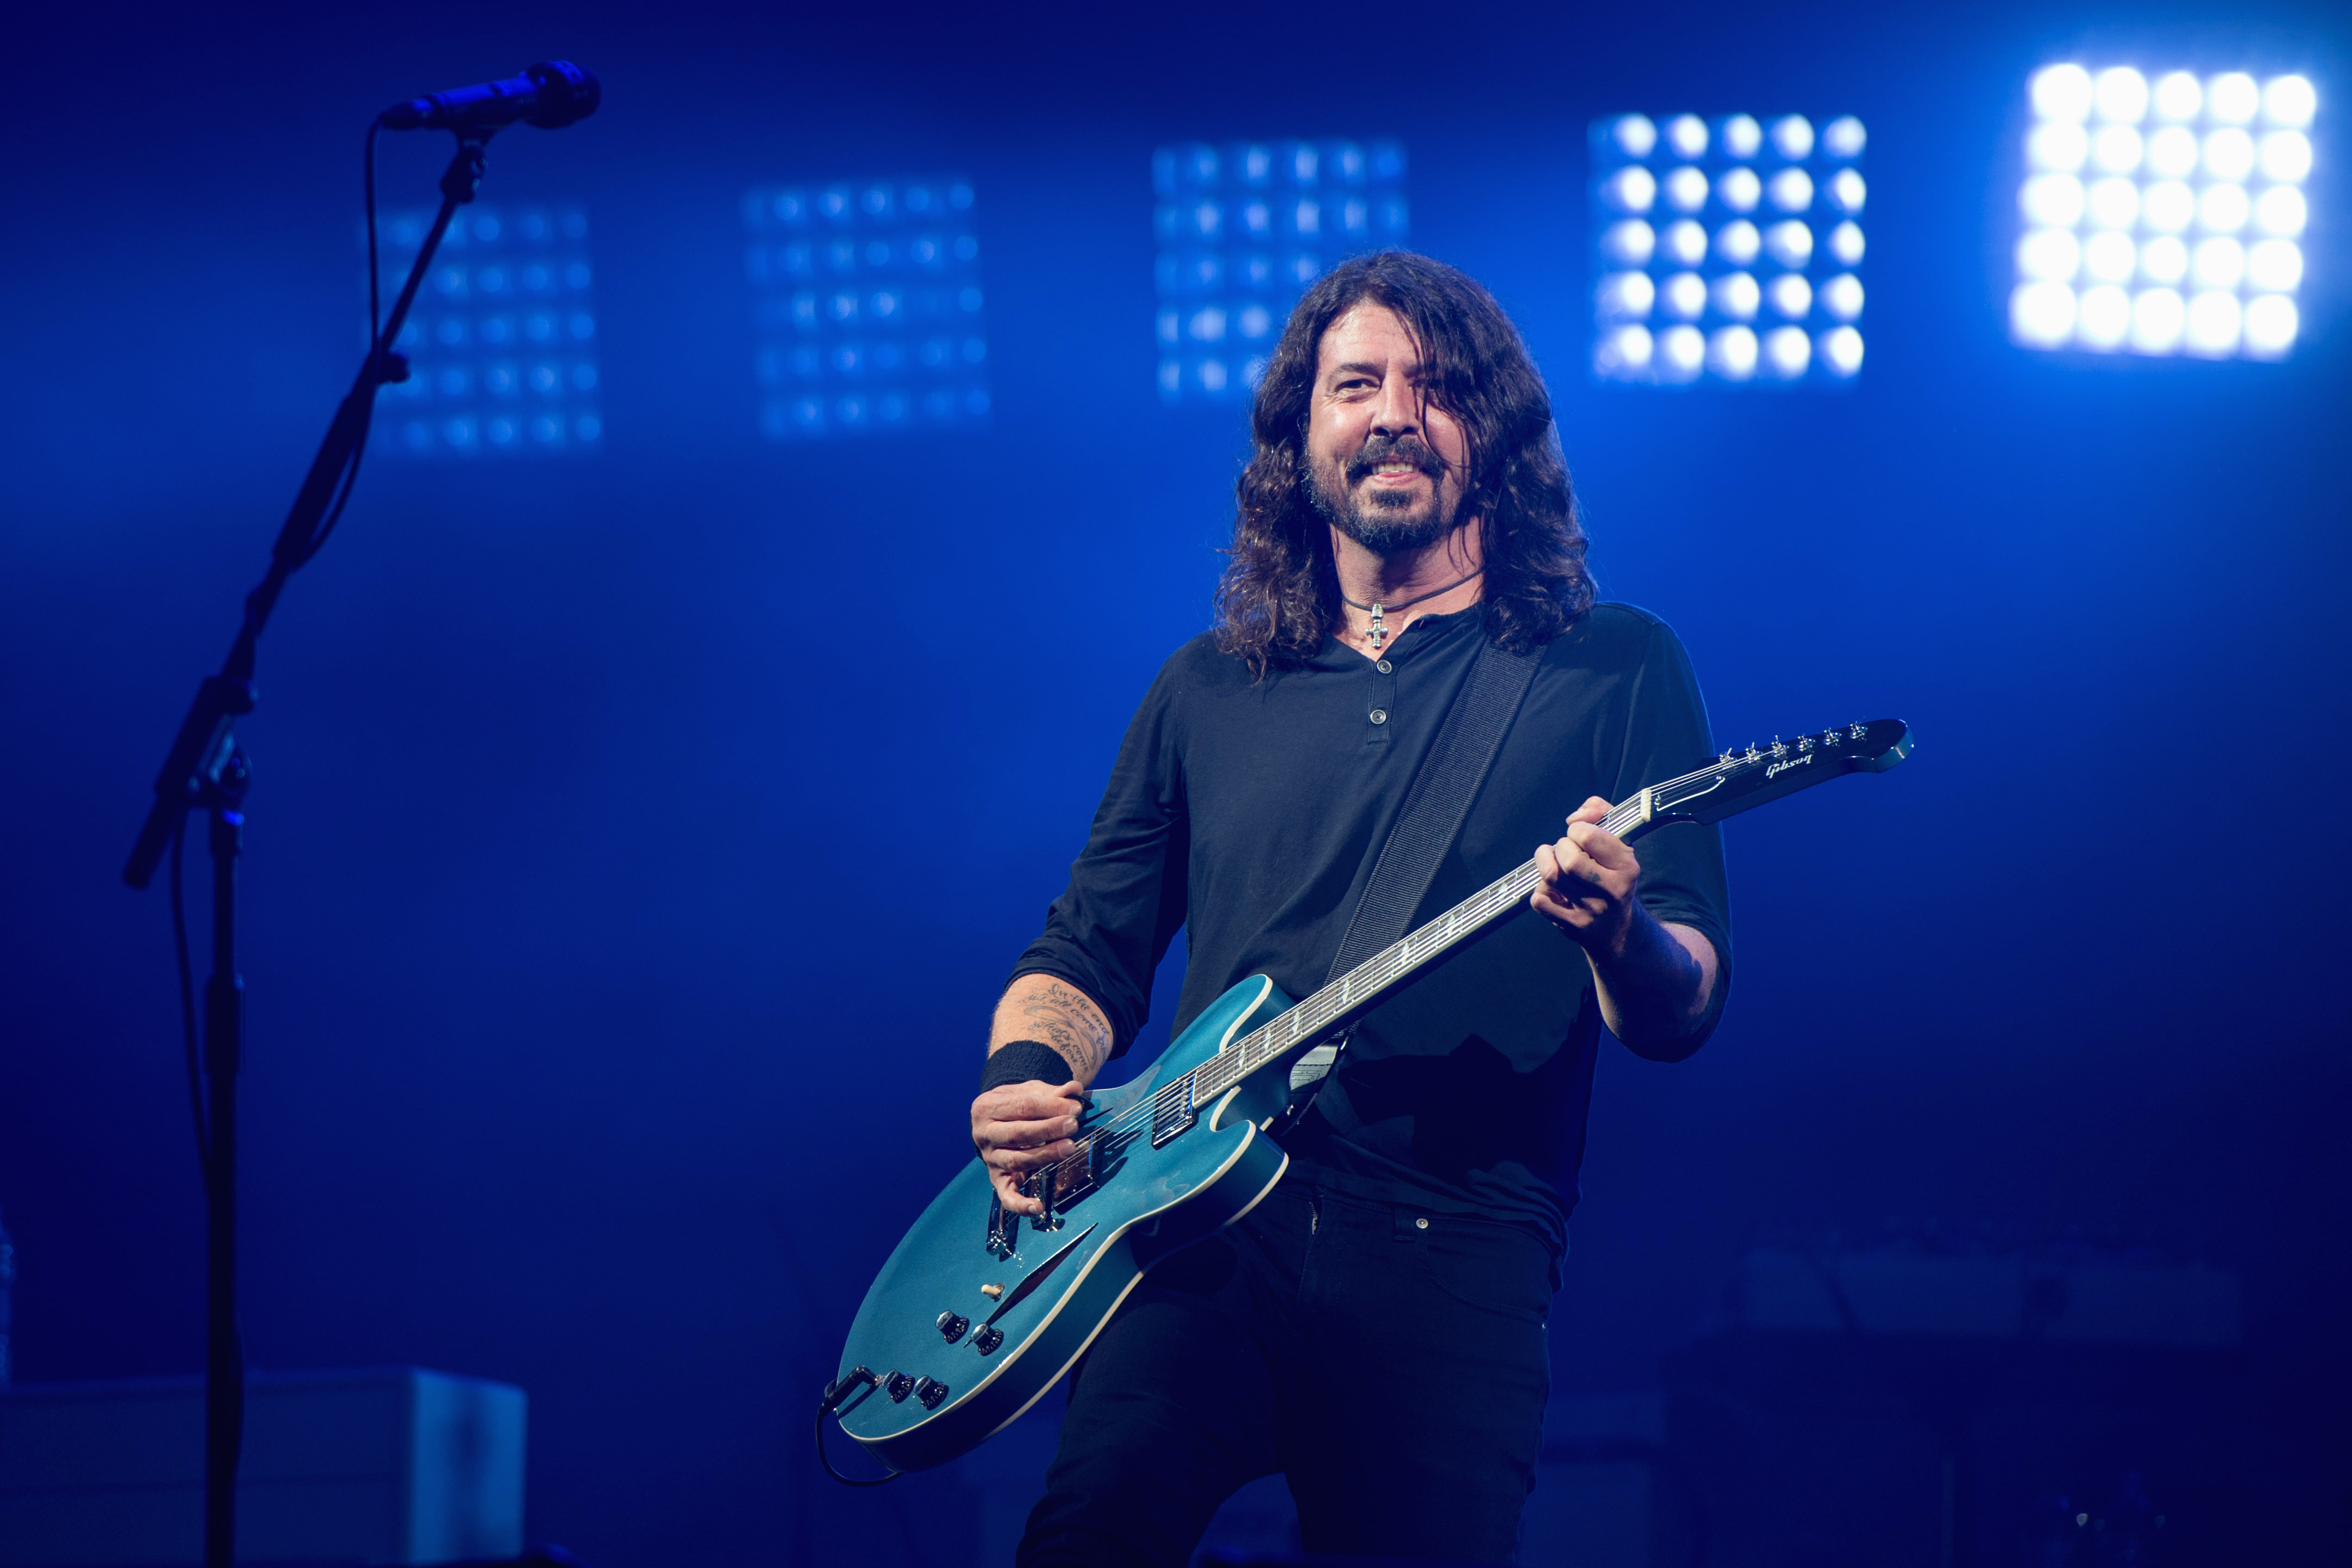 Dave Grohl Unveils Trailer for Documentary 'What Drives Us' [VIDEO]